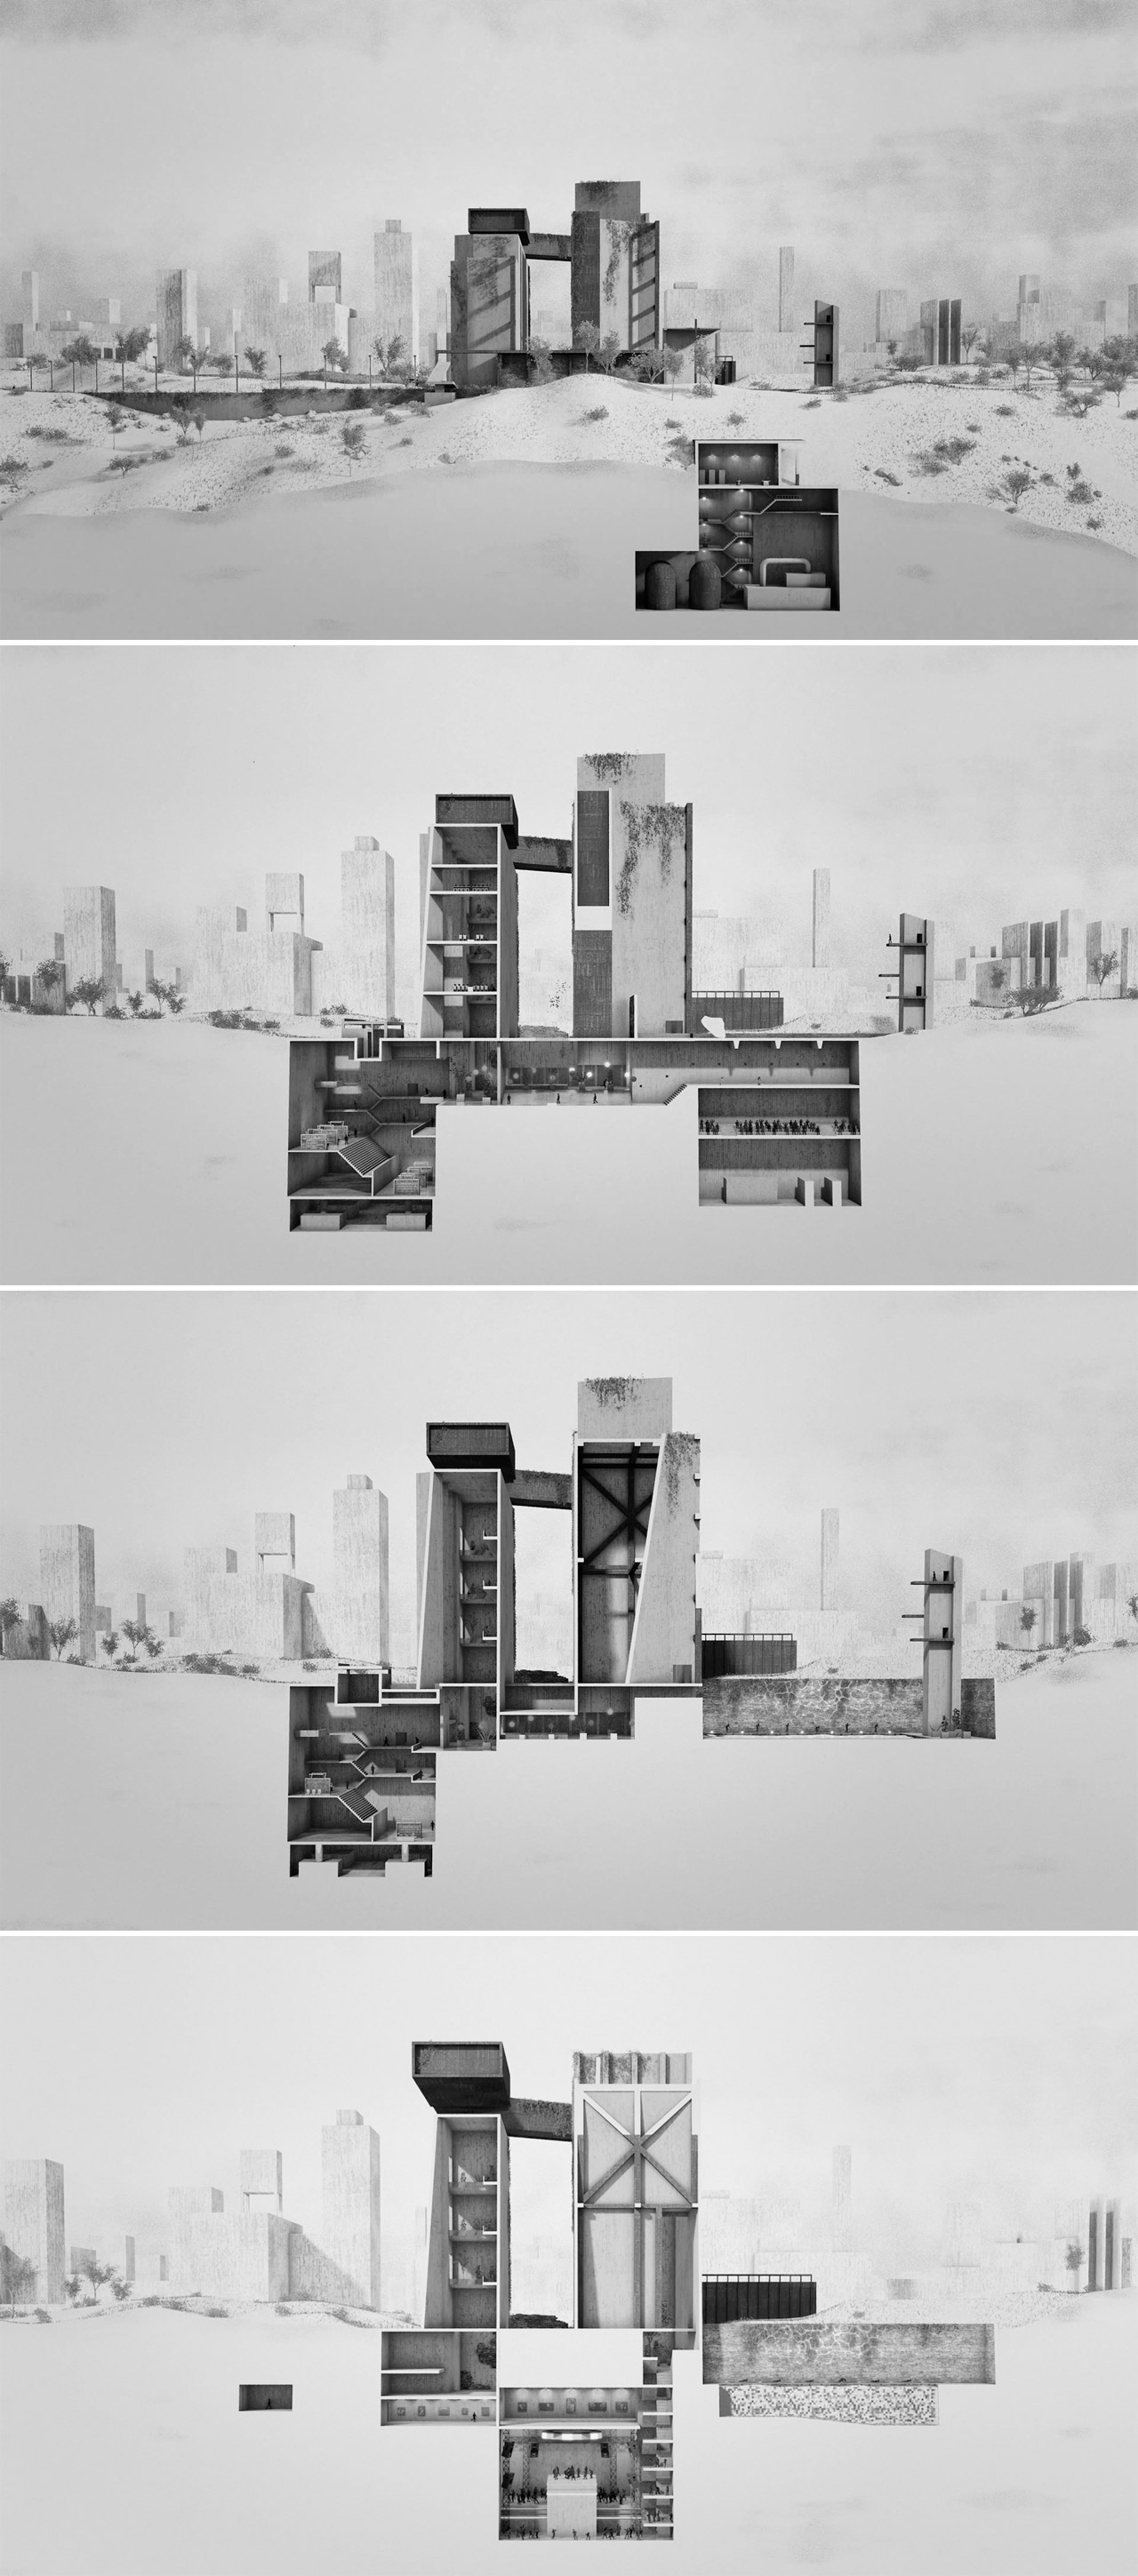 Utopia, an animated short film by studio Optical Arts using a cross-section view.